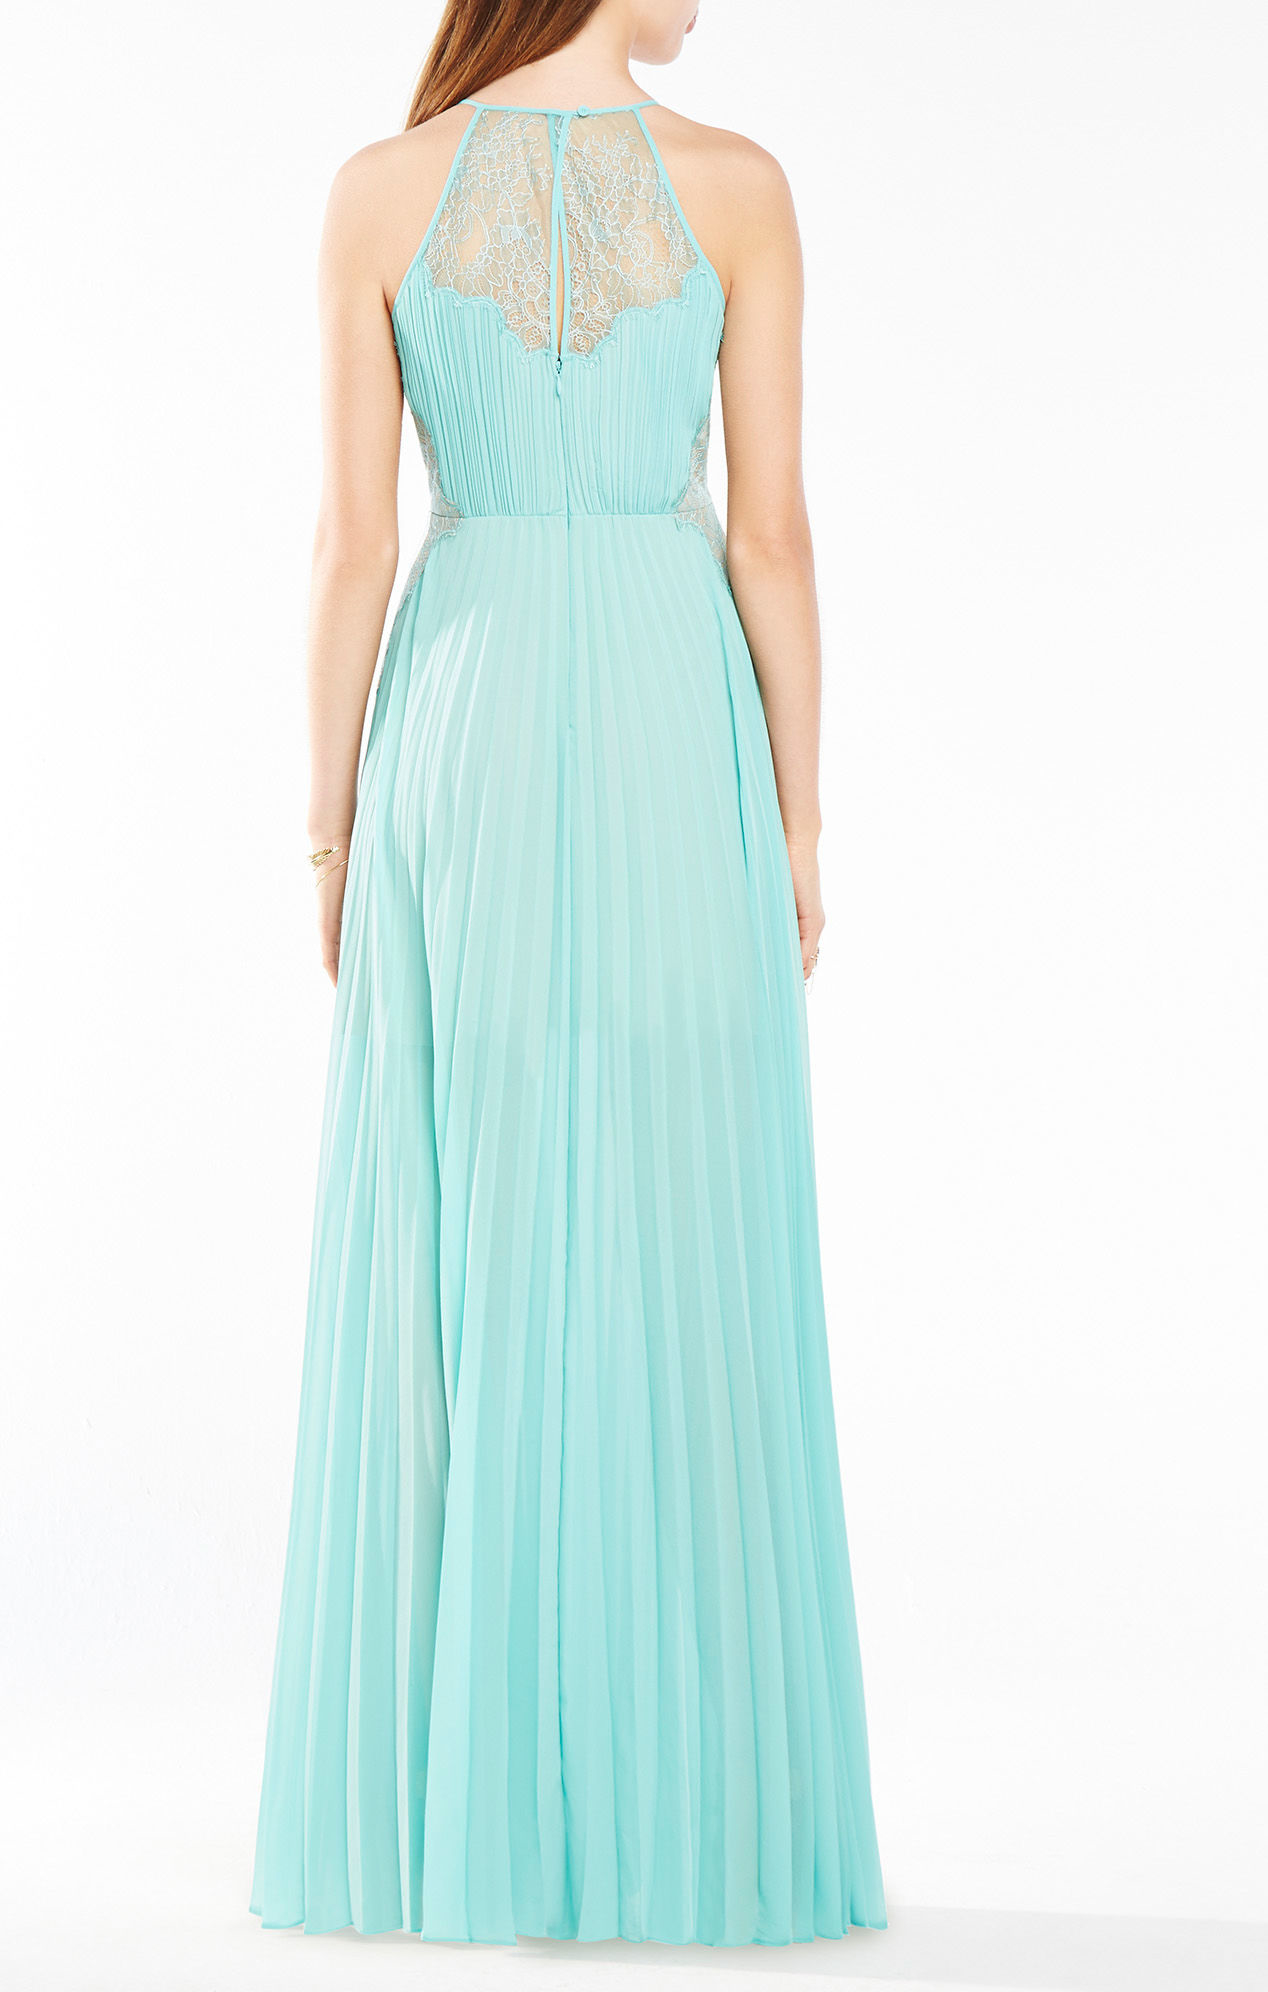 Lyst - Bcbgmaxazria Misty Lace-blocked Pleated Gown in Blue